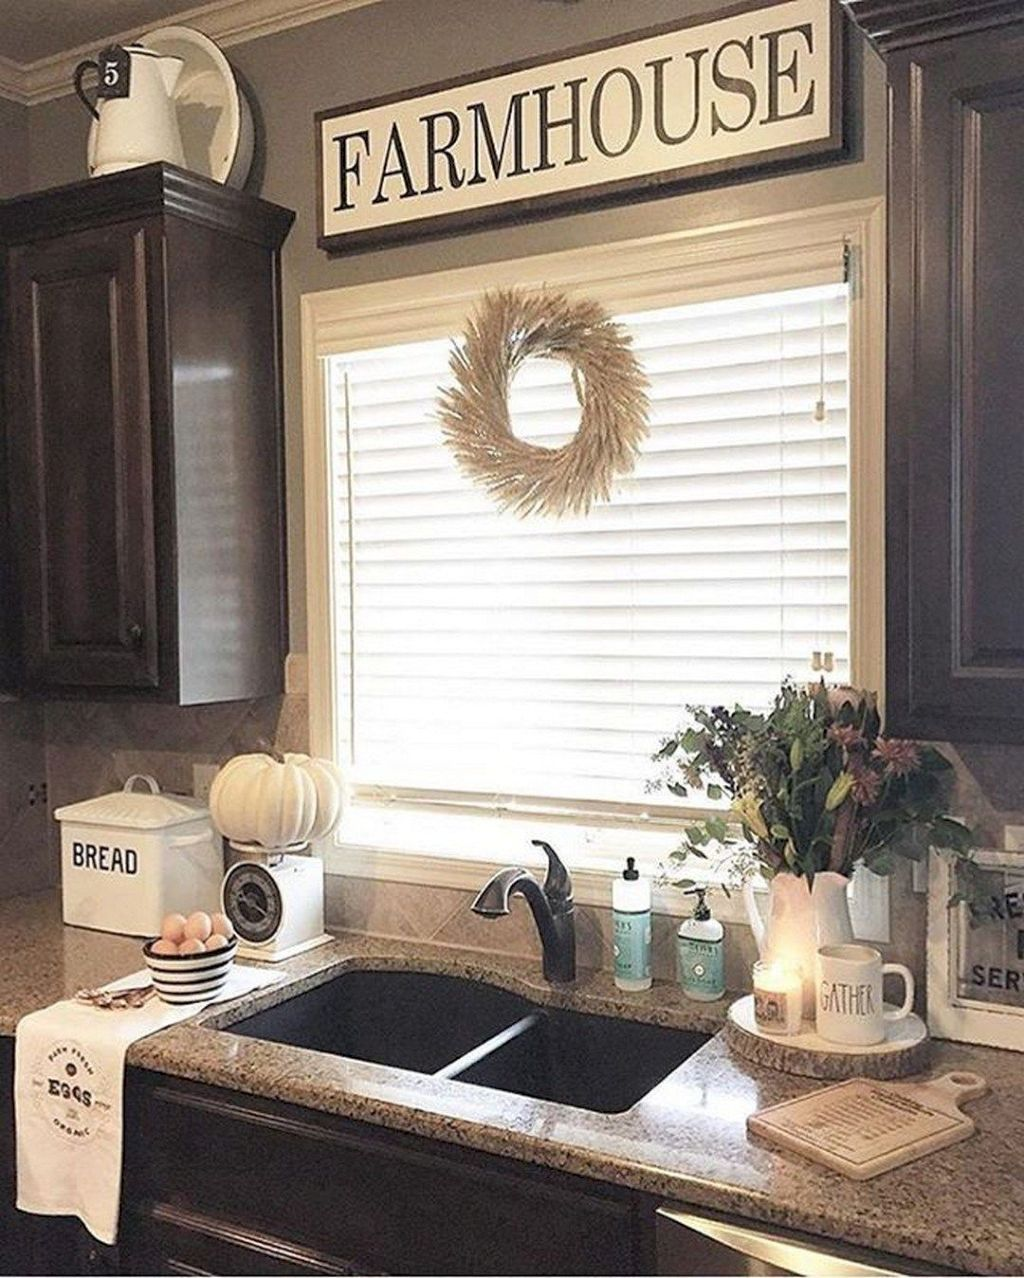 Kitchen Decor 14 Best Farmhouse Kitchen Decor Ideas Rustic Decor Pinterest